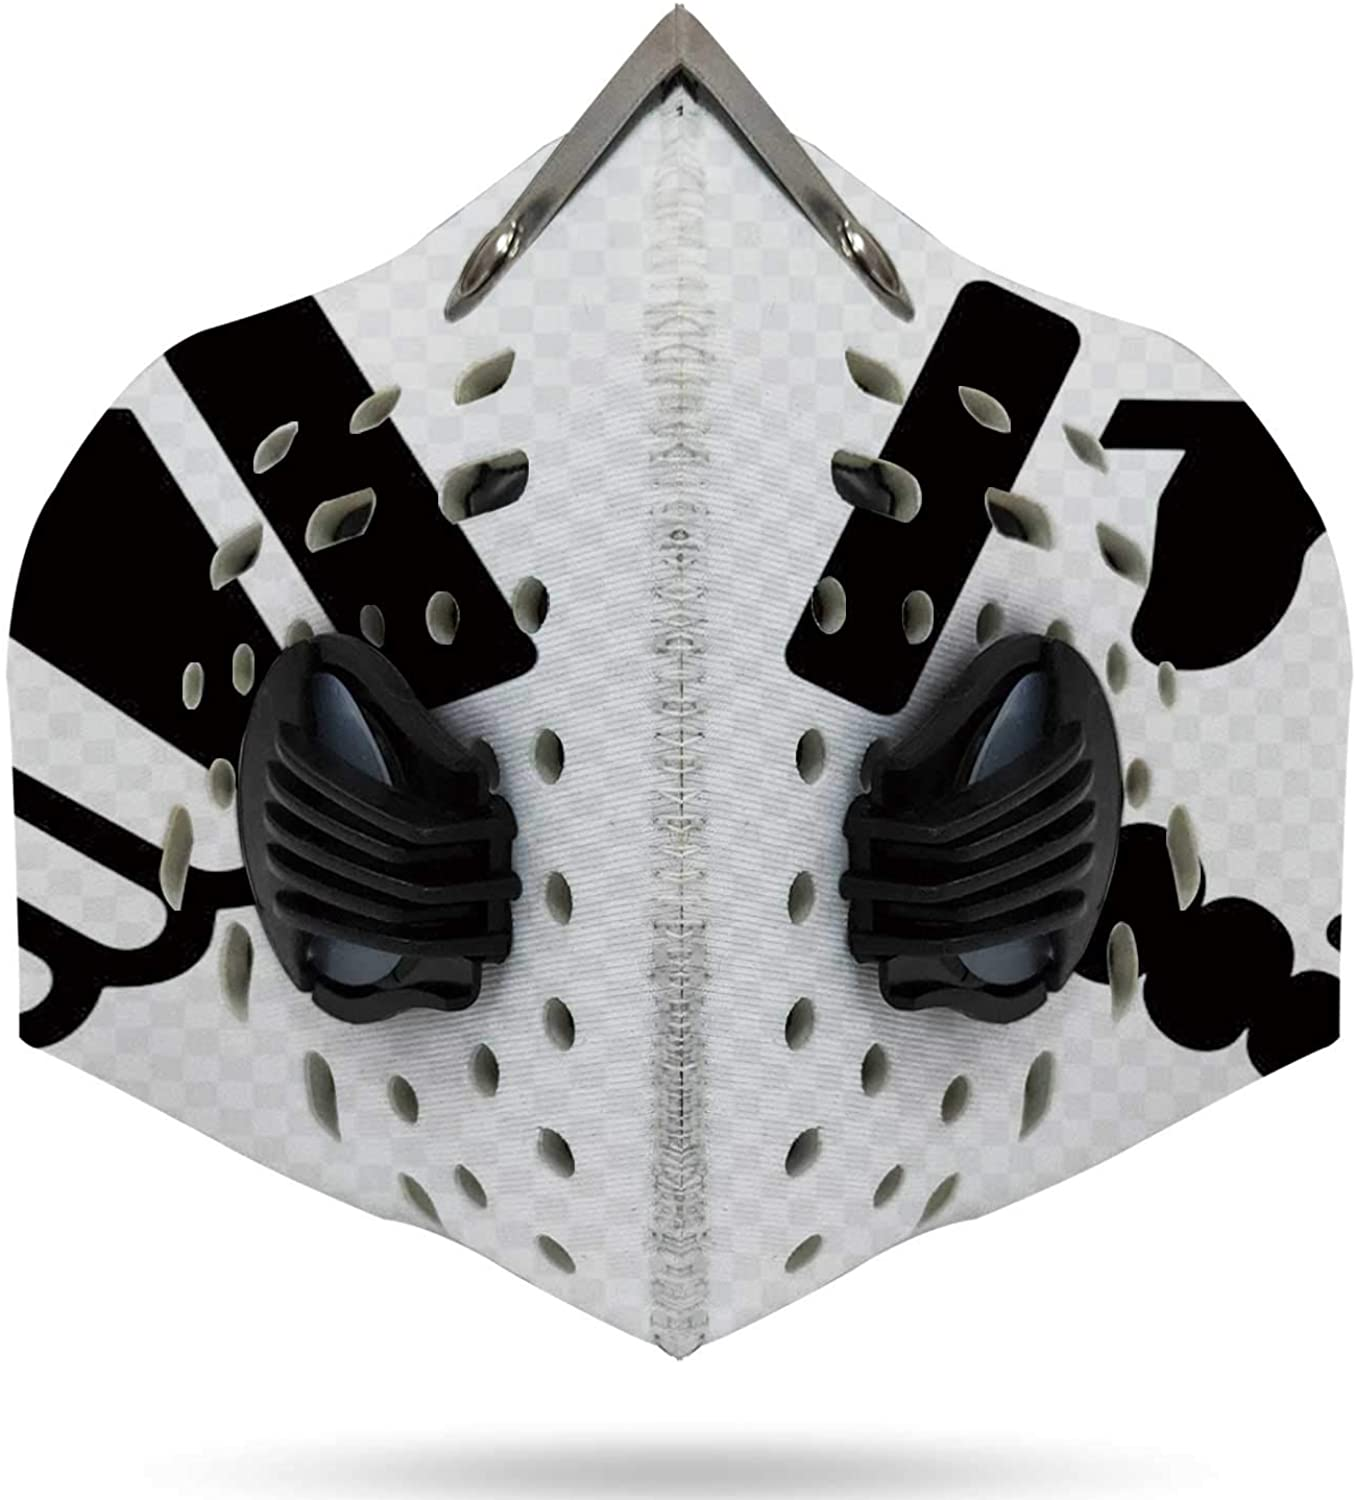 White Concrete Wall Germany,Unisex Sports Face Cover anas for Dust, Outdoors, Festivals, Sports